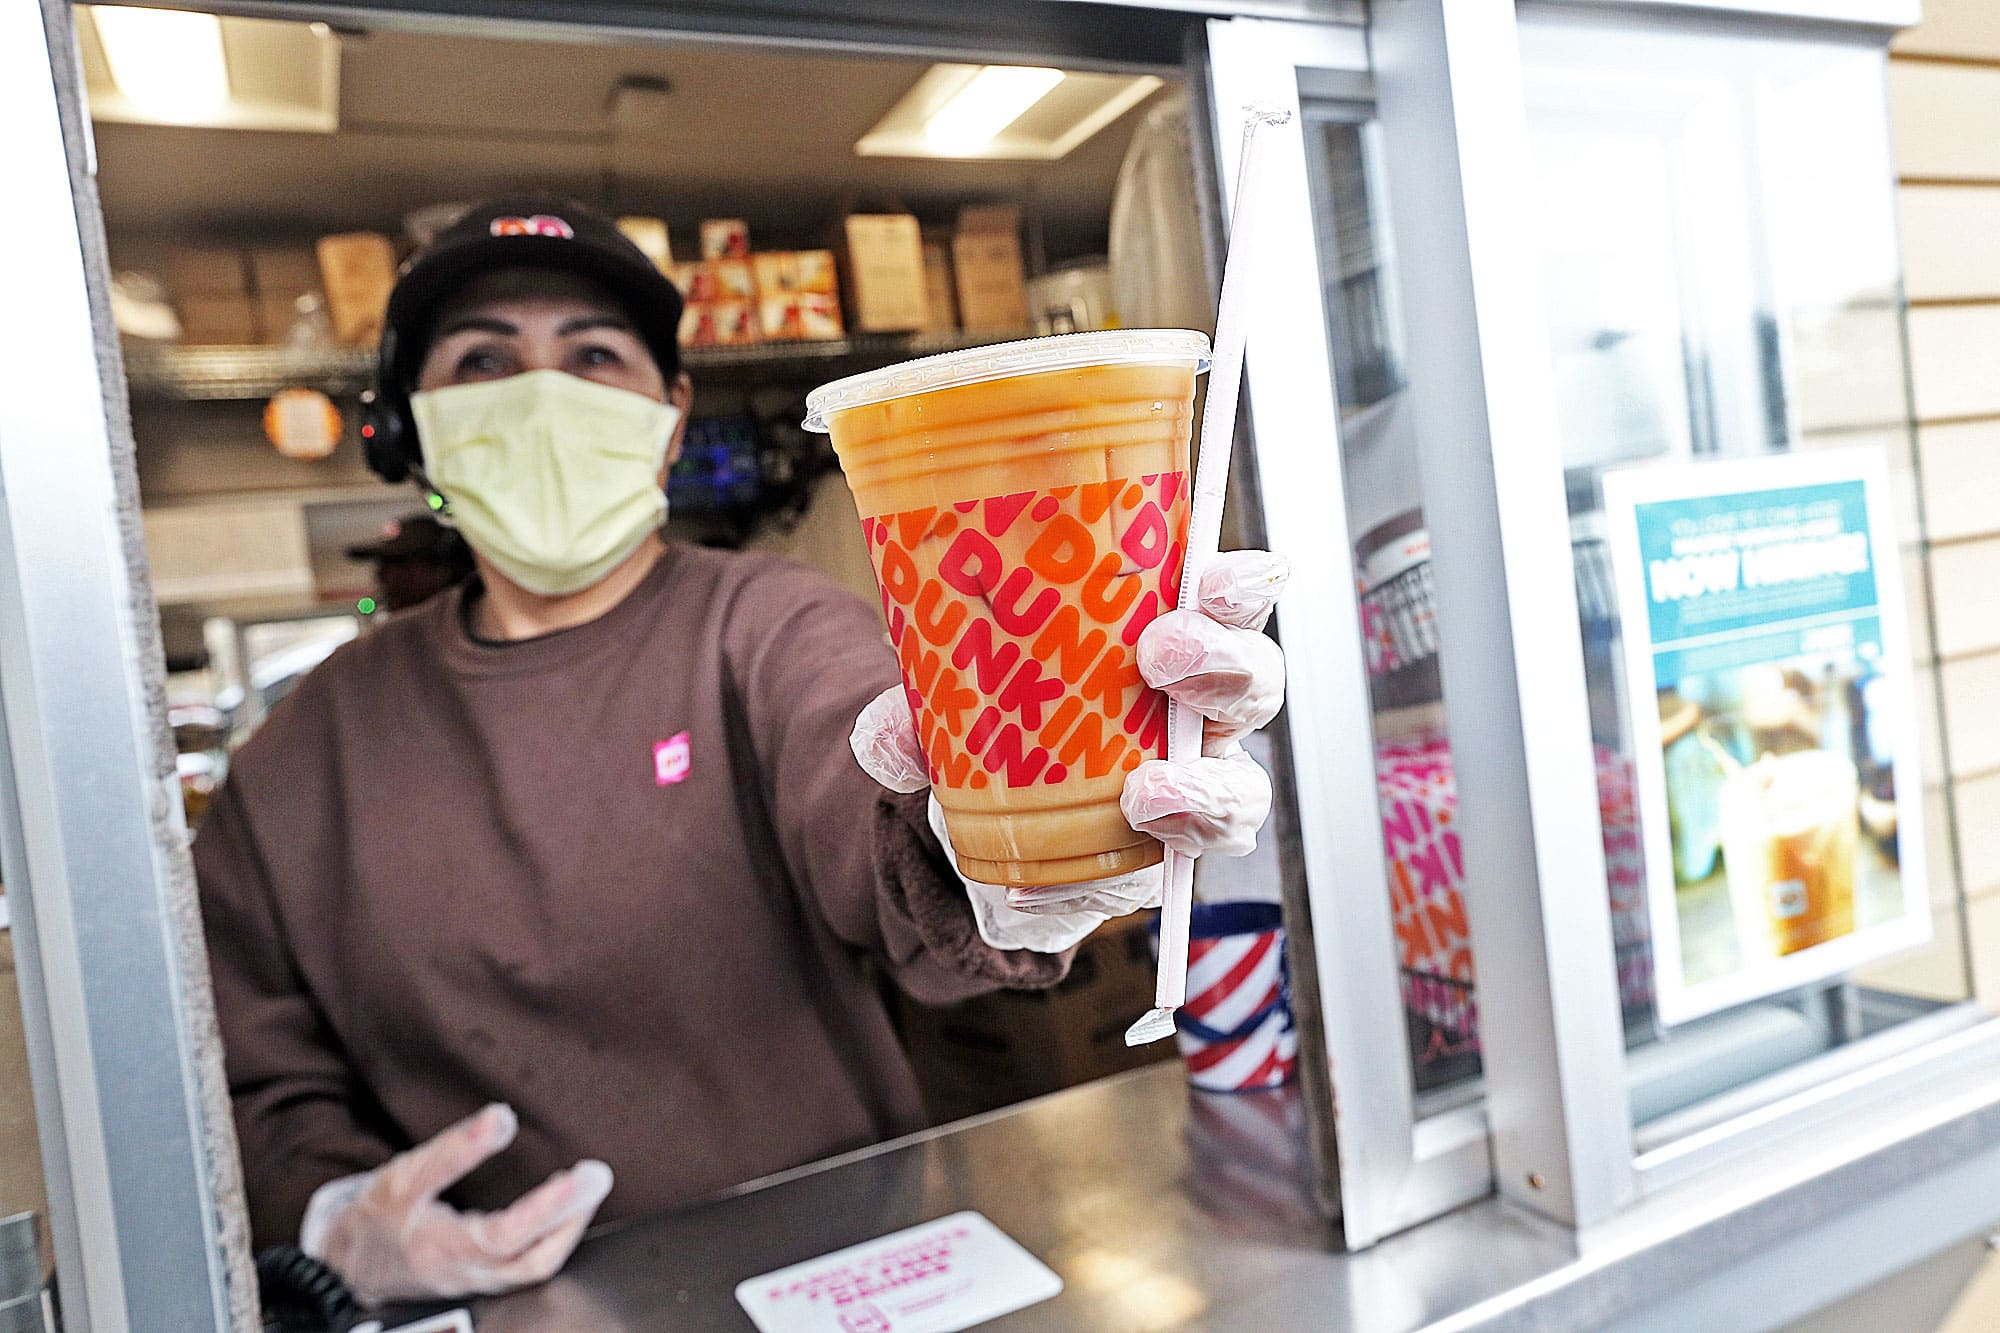 Dunkin' plans to hire 25,000 workers as restaurant industry begins pandemic recovery